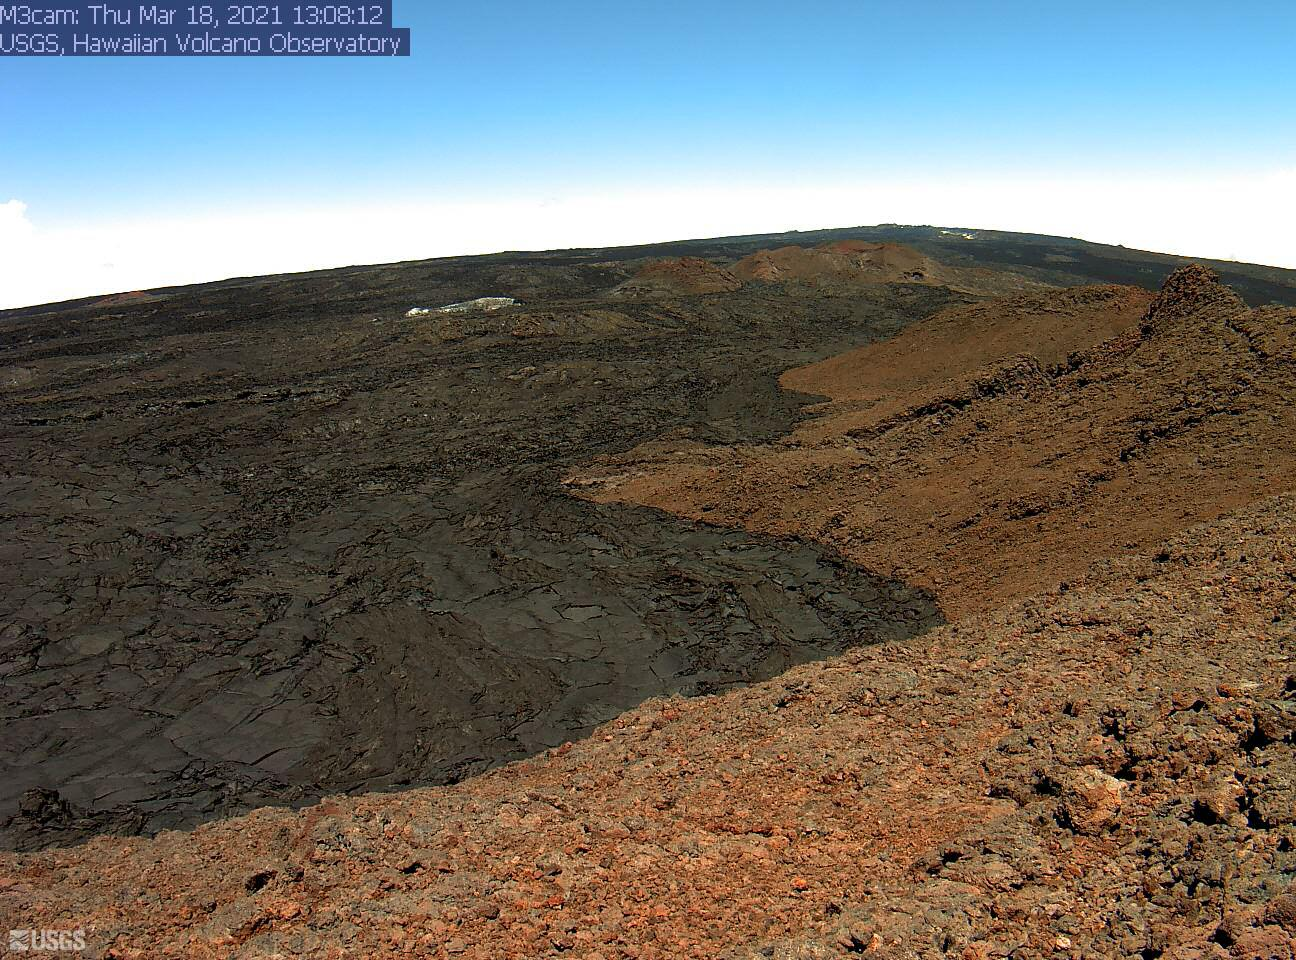 Upper part of Mauna Loa SW rift zone (image: HVO)